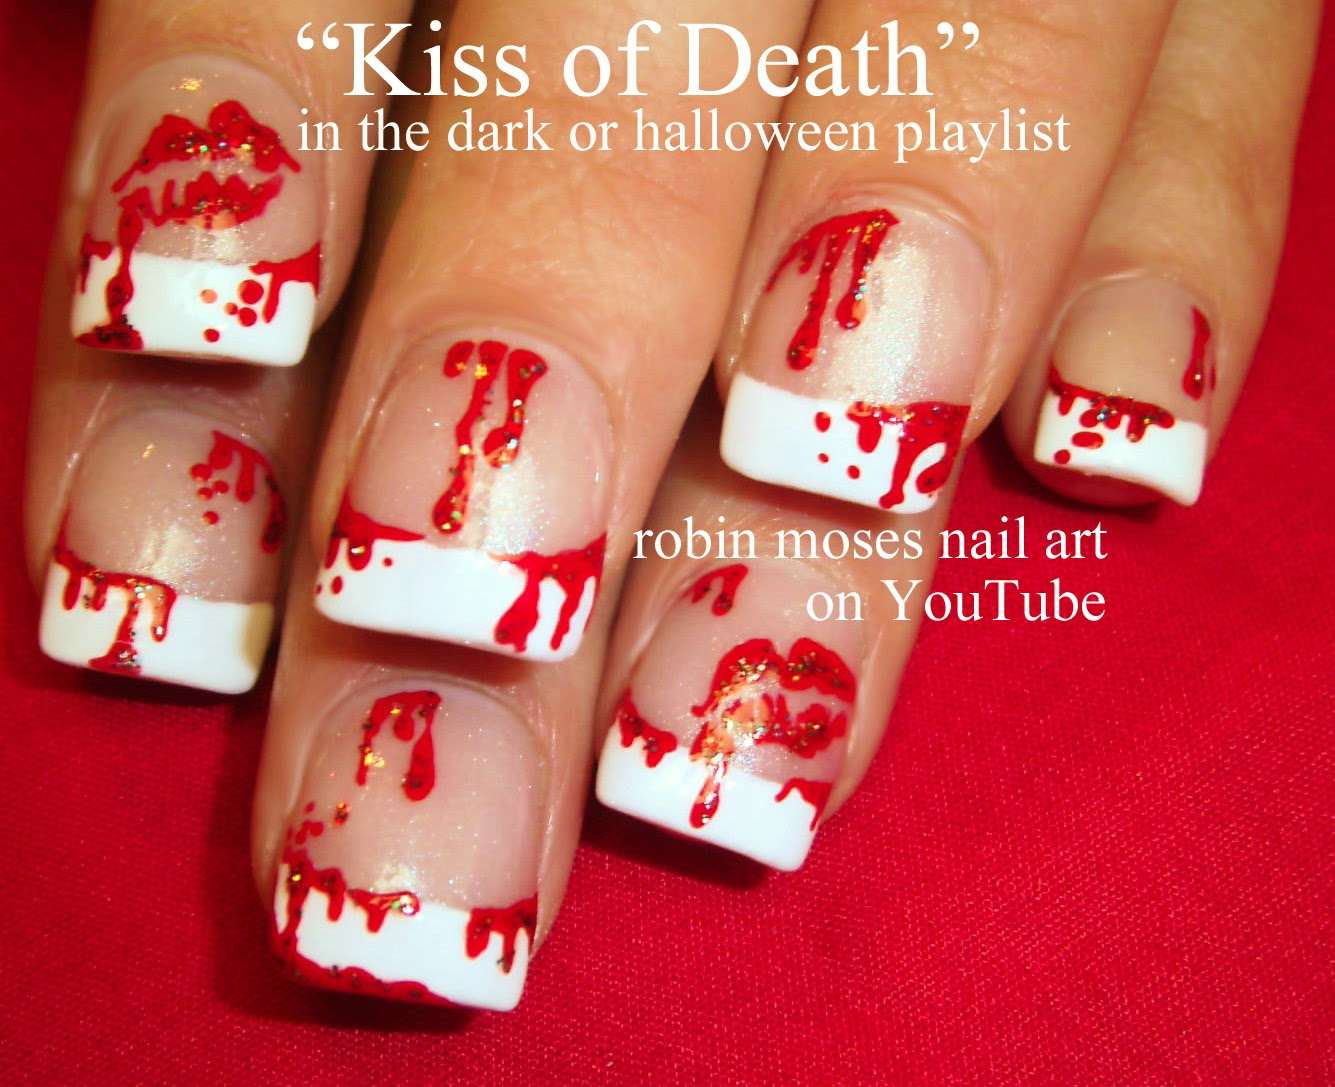 Robin moses nail art halloween nails halloween nail art halloween nails halloween nail art blood splatter nails bloody nails scary nails halloween nail art bloody nail art halloween ideas prinsesfo Choice Image